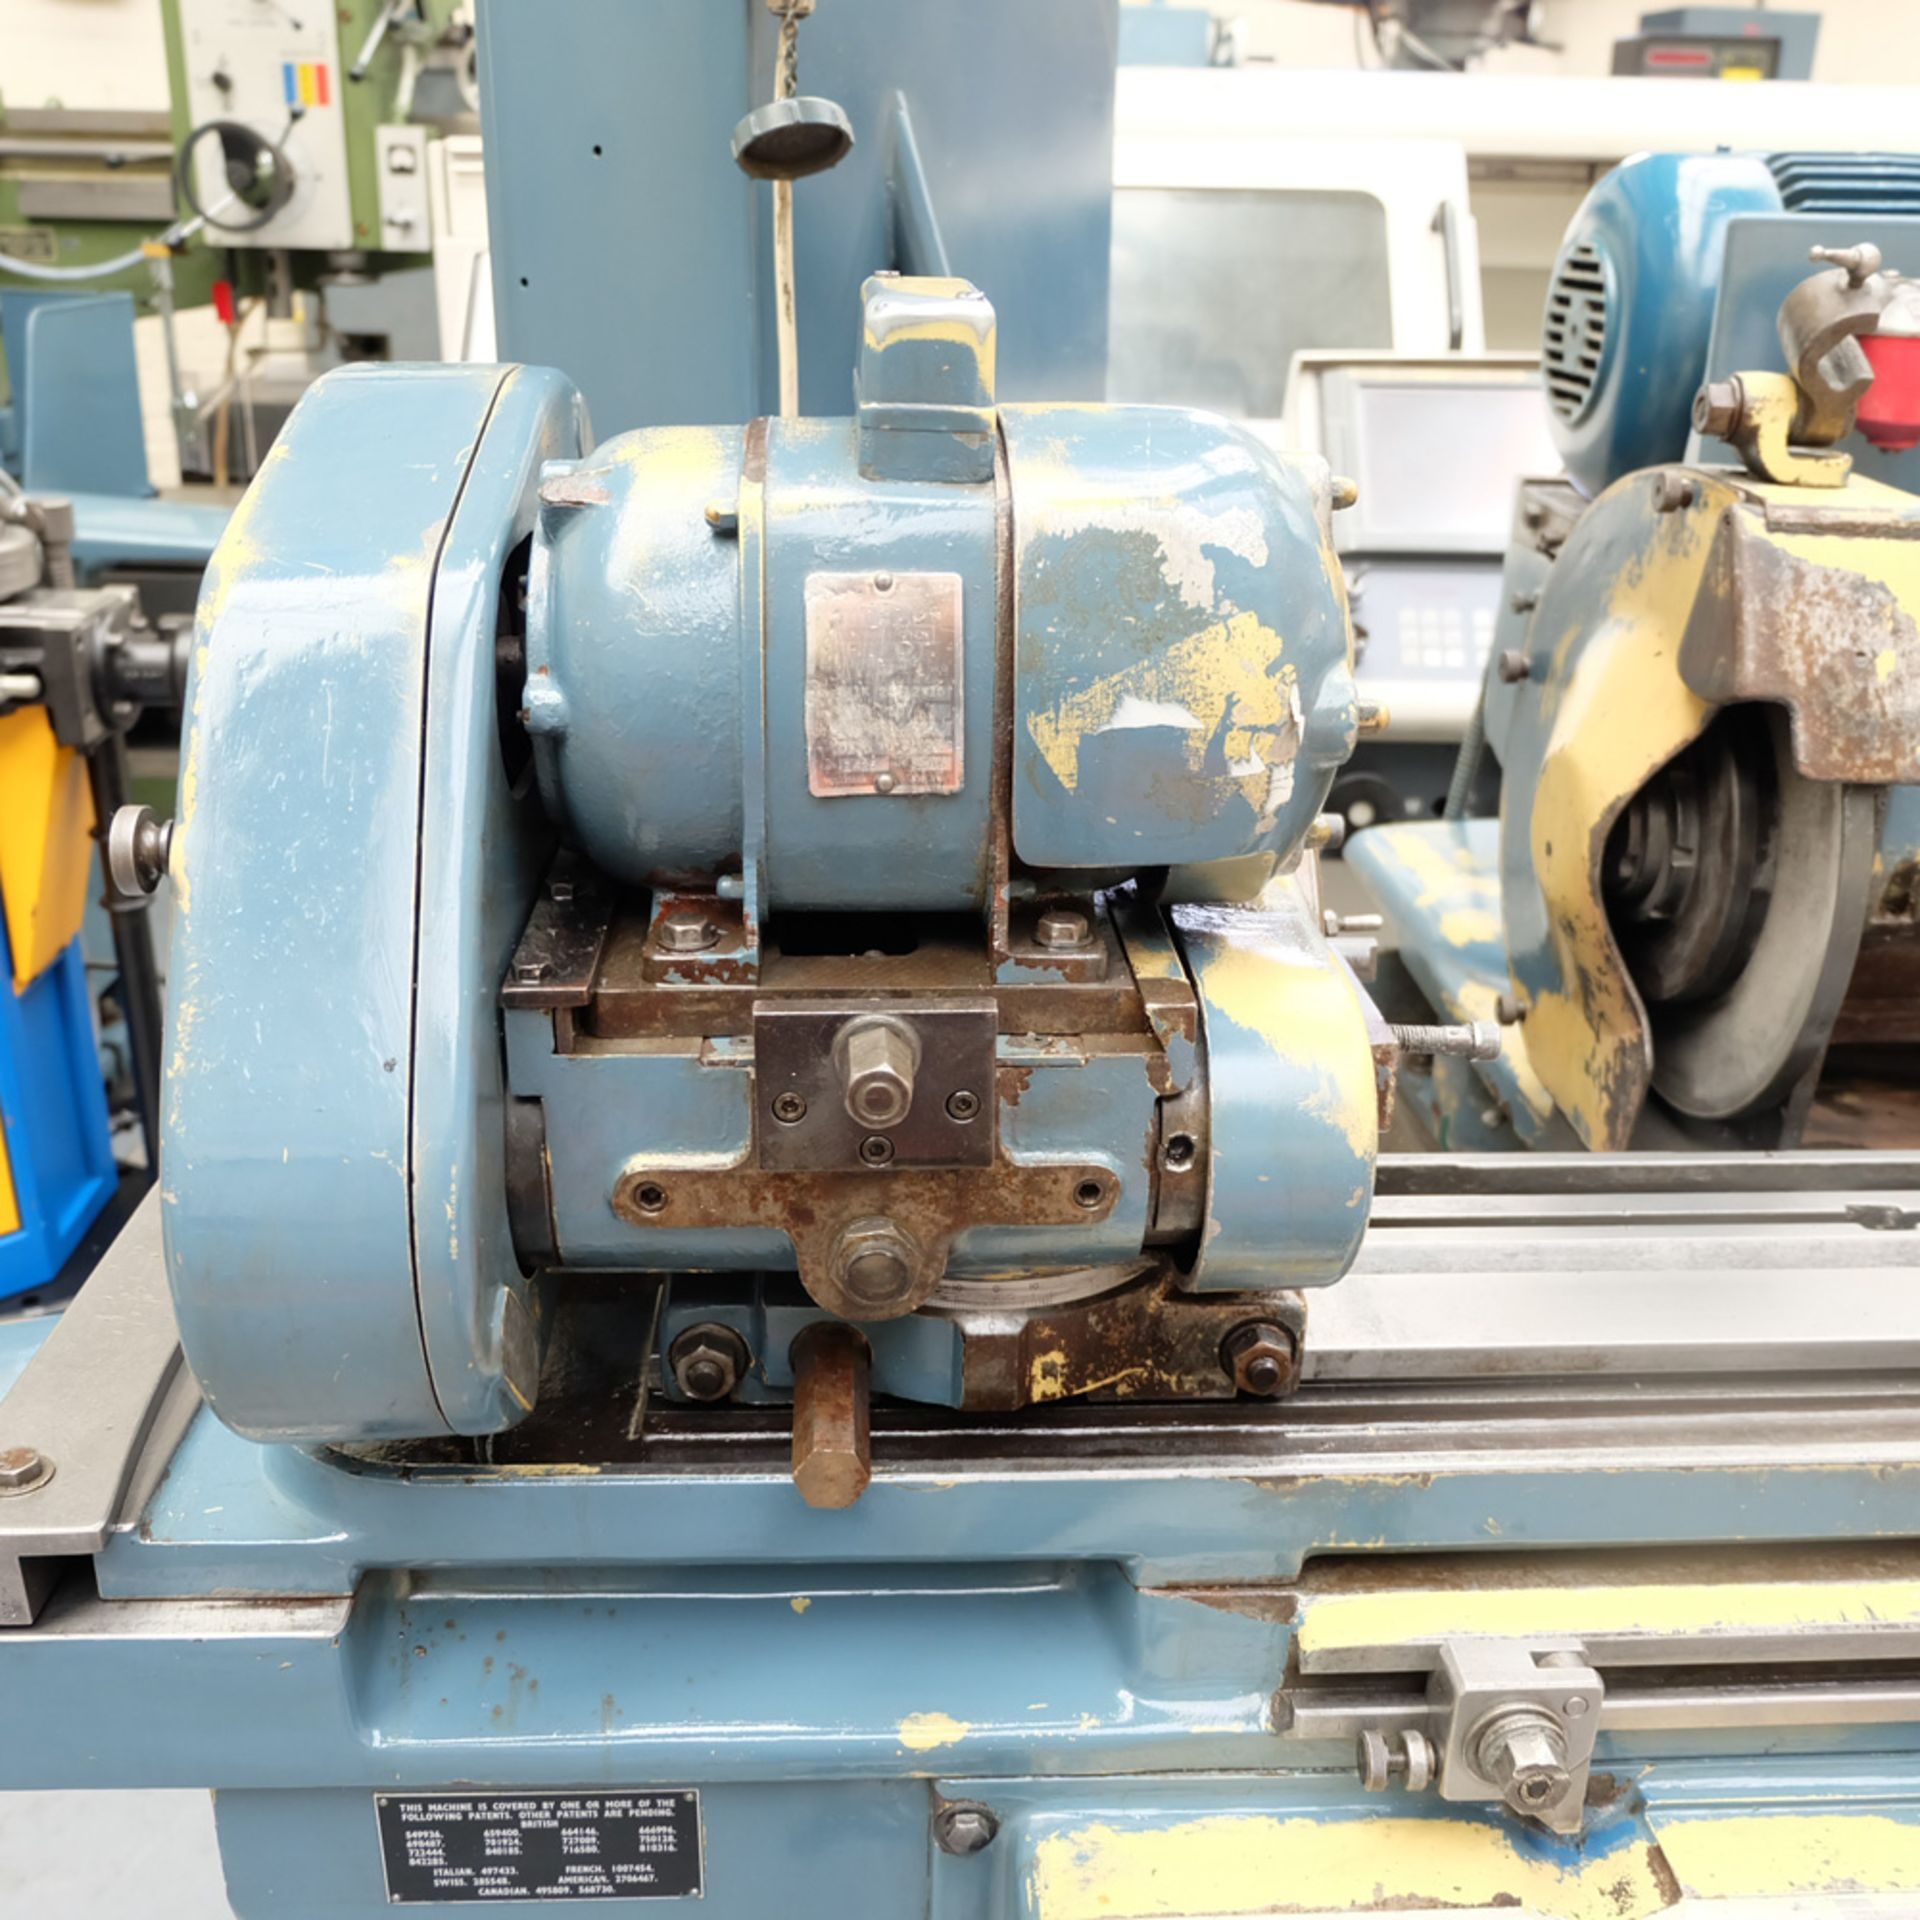 Jones & Shipman Type 1310 Cylindrical Grinder - Image 10 of 13